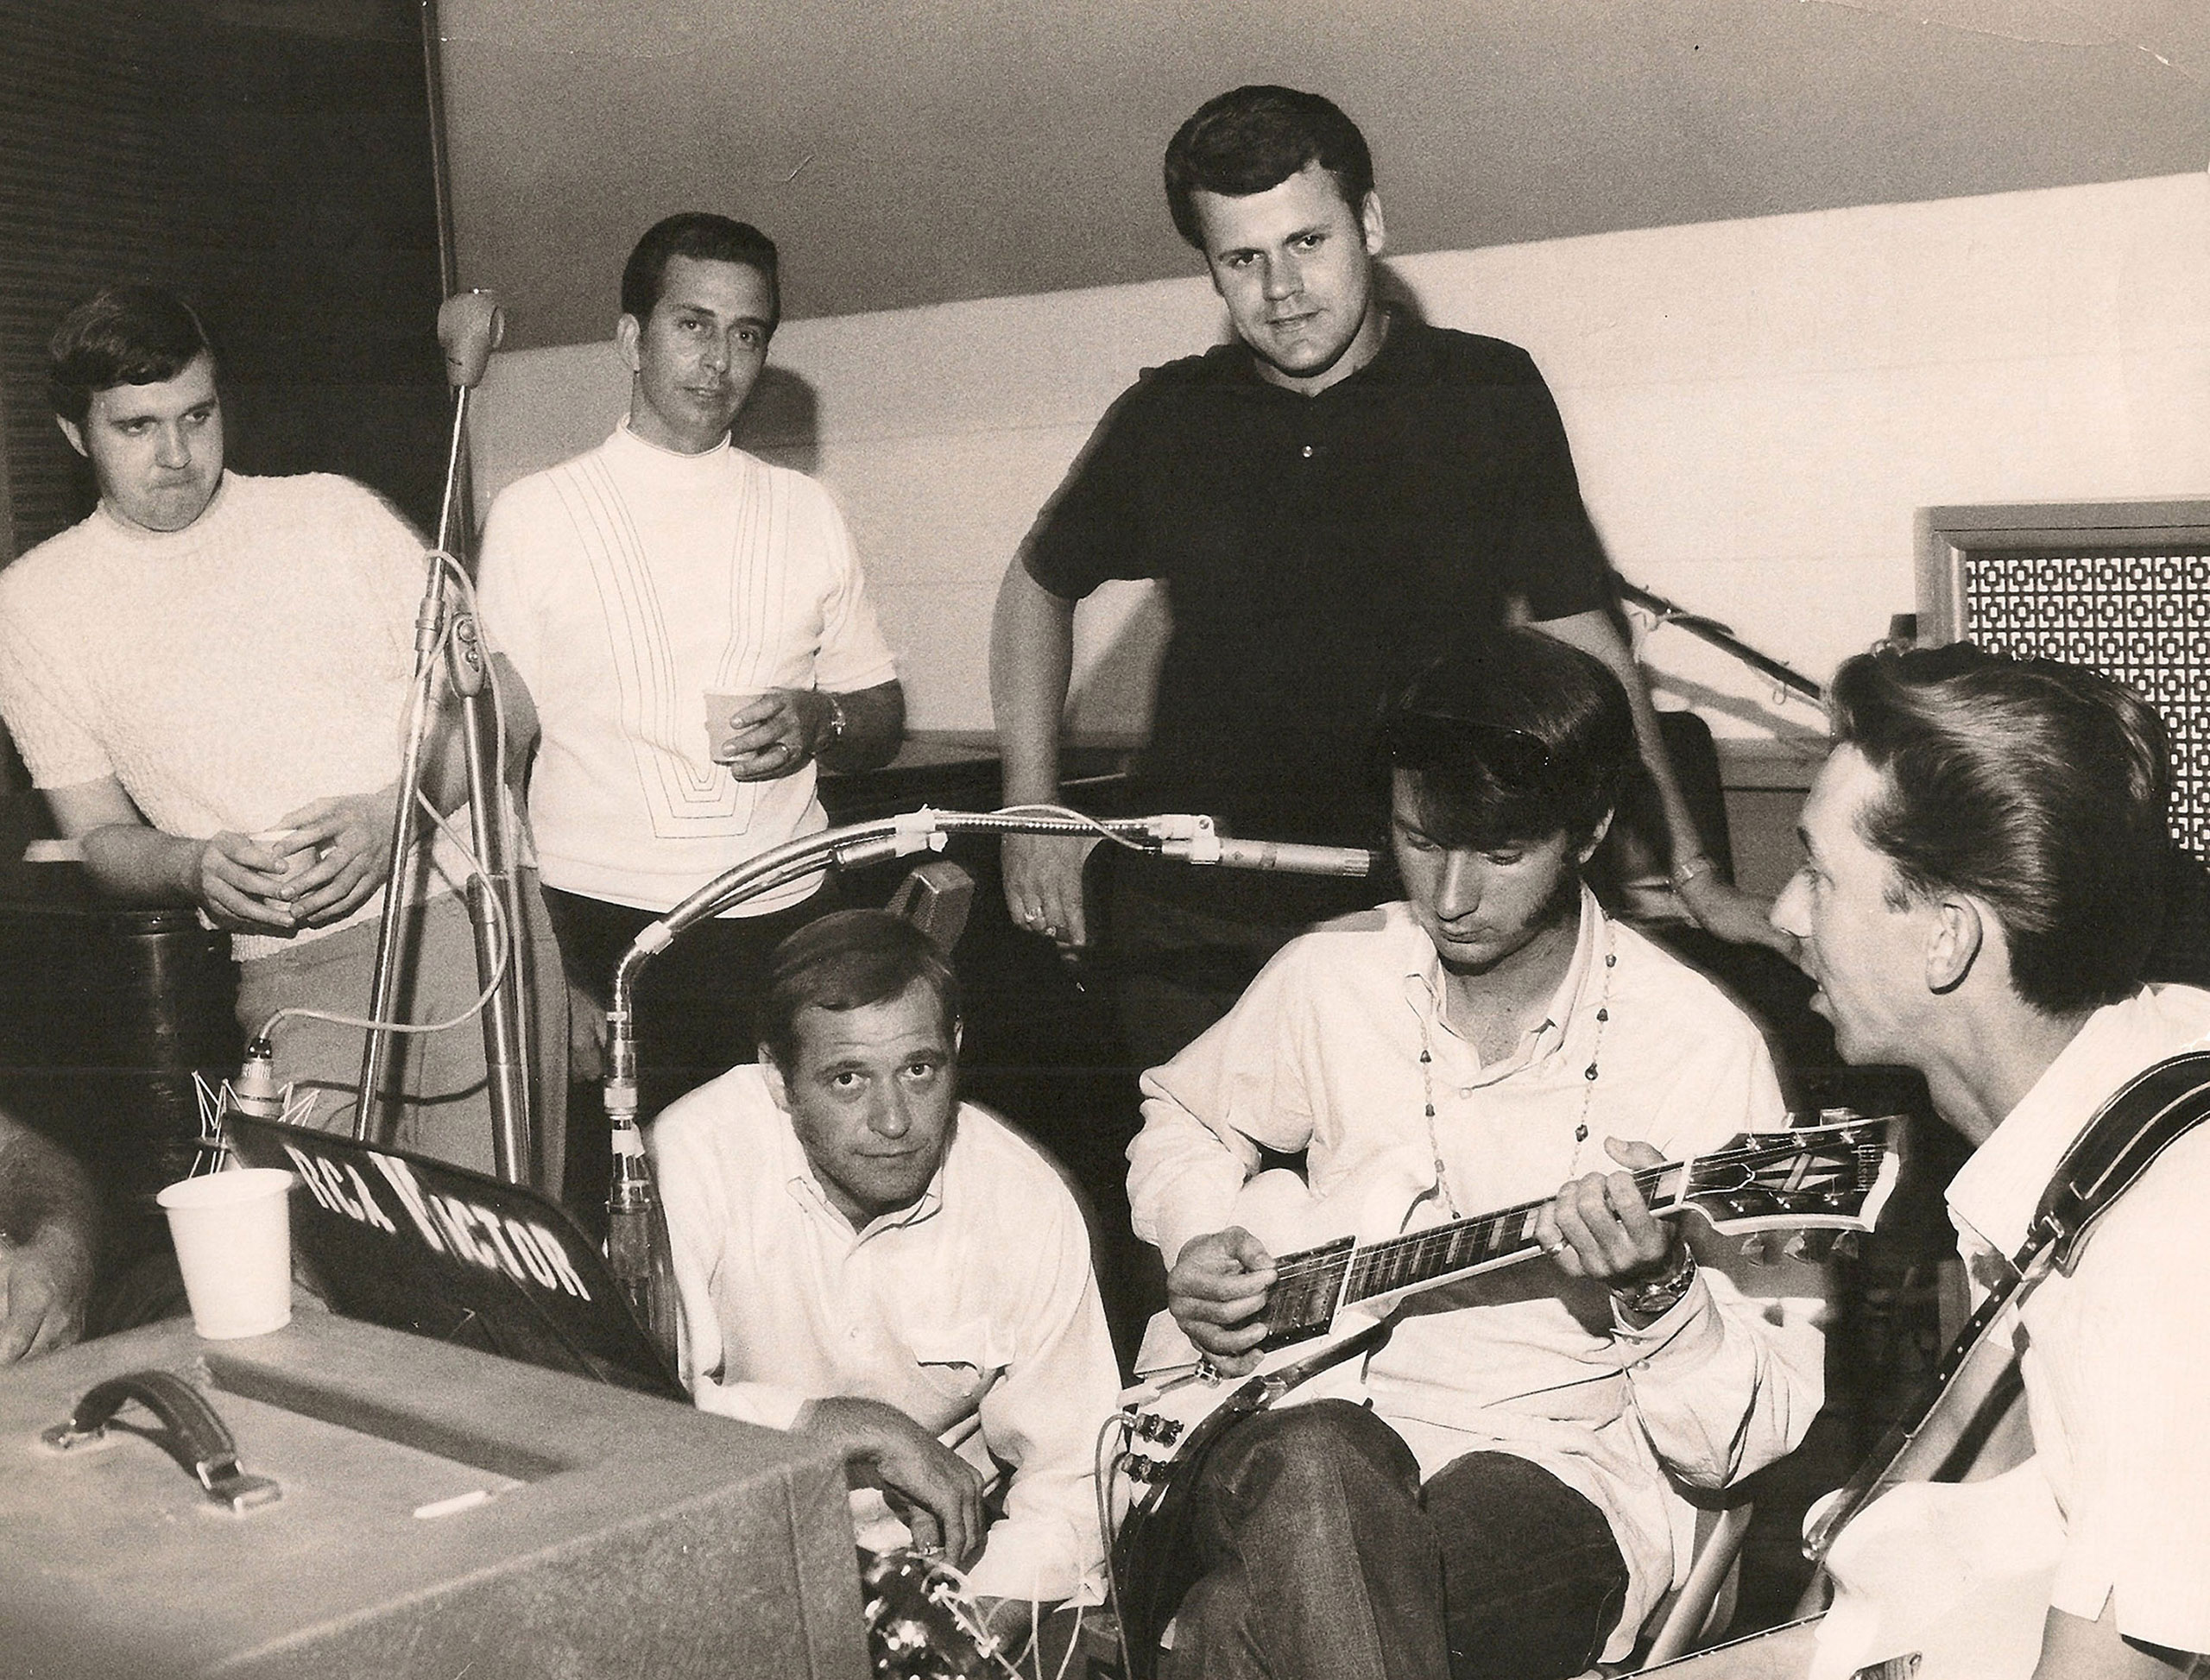 Pictured recording in RCA Studio A are (standing, l-r): Norbert Putnam, Lloyd Green, and Kenny Buttrey; (seated, l-r): Felton Jarvis, The Monkees' Michael Nesmith, and Wayne Moss, 1960s.